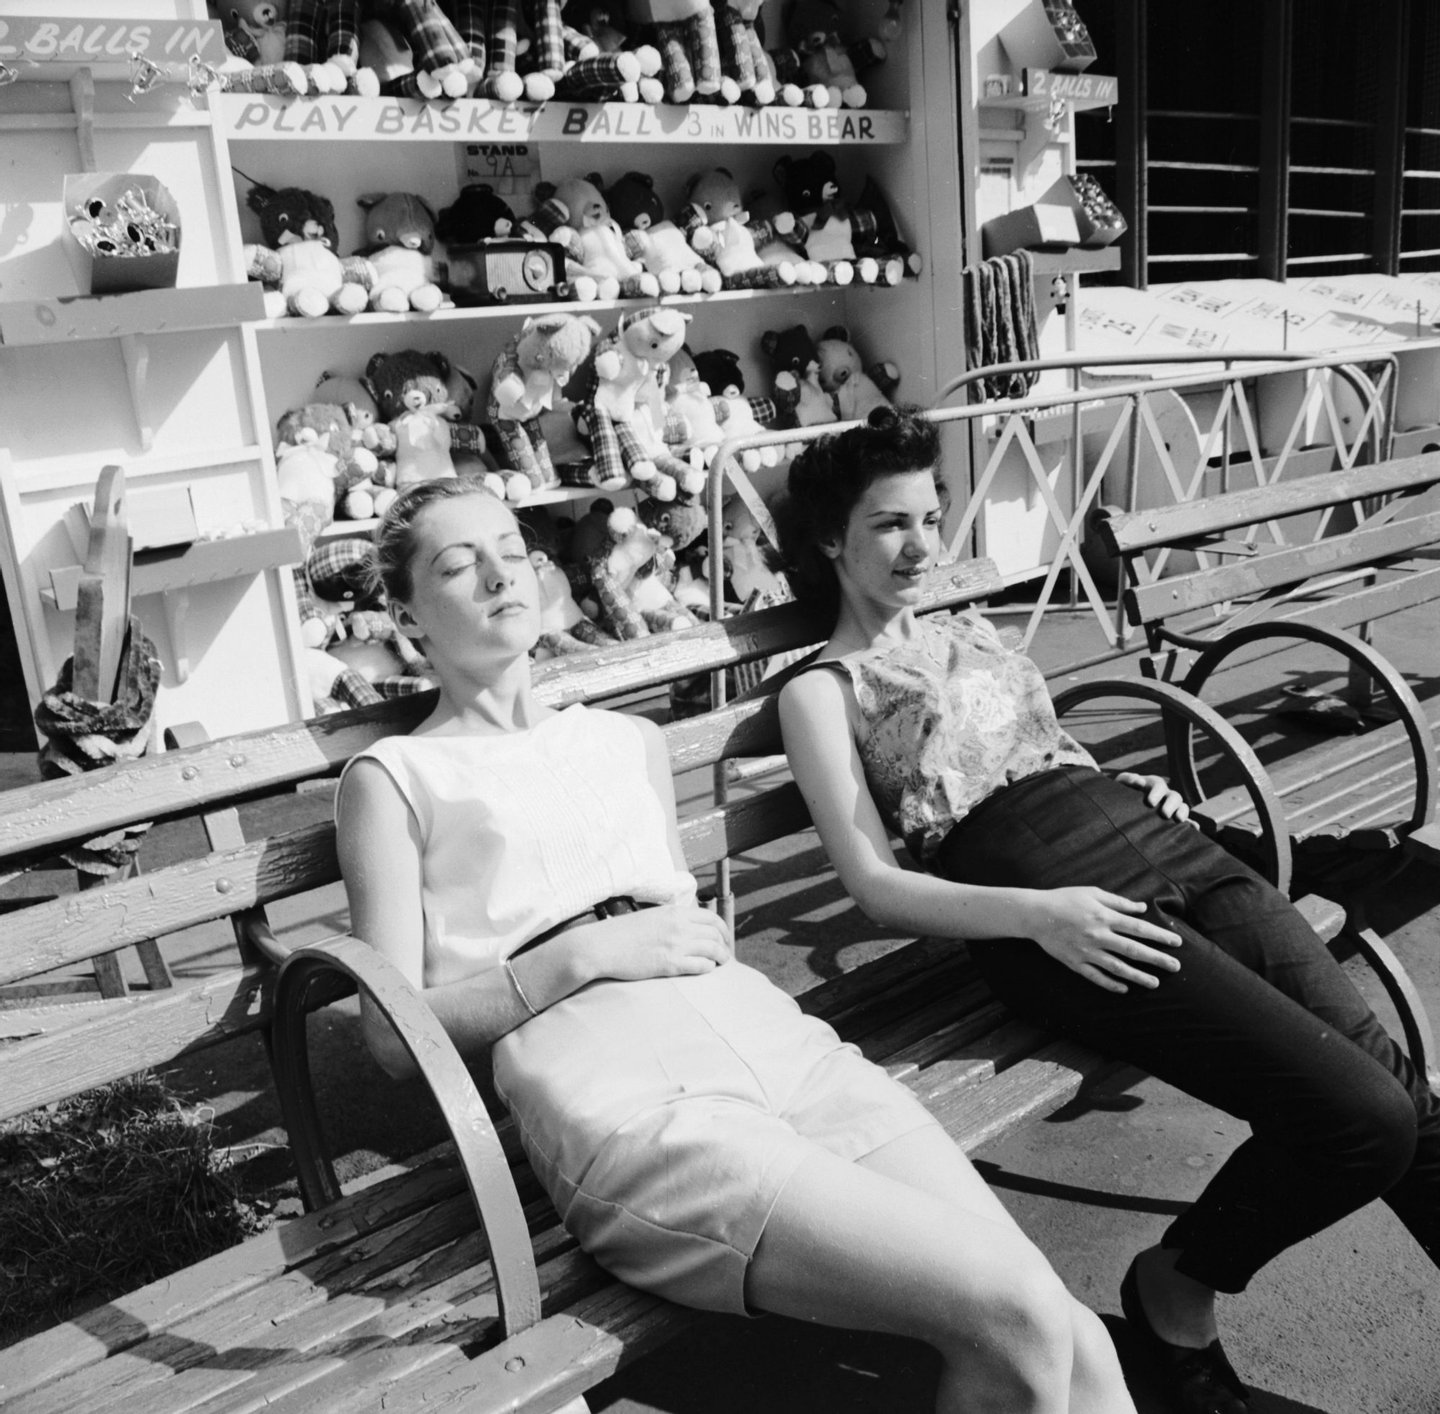 circa 1956: Two girls take a break from their summer jobs at the Palisades Amusement Park, New Jersey to bask in the noontime sun. (Photo by Sherman/Three Lions/Getty Images)